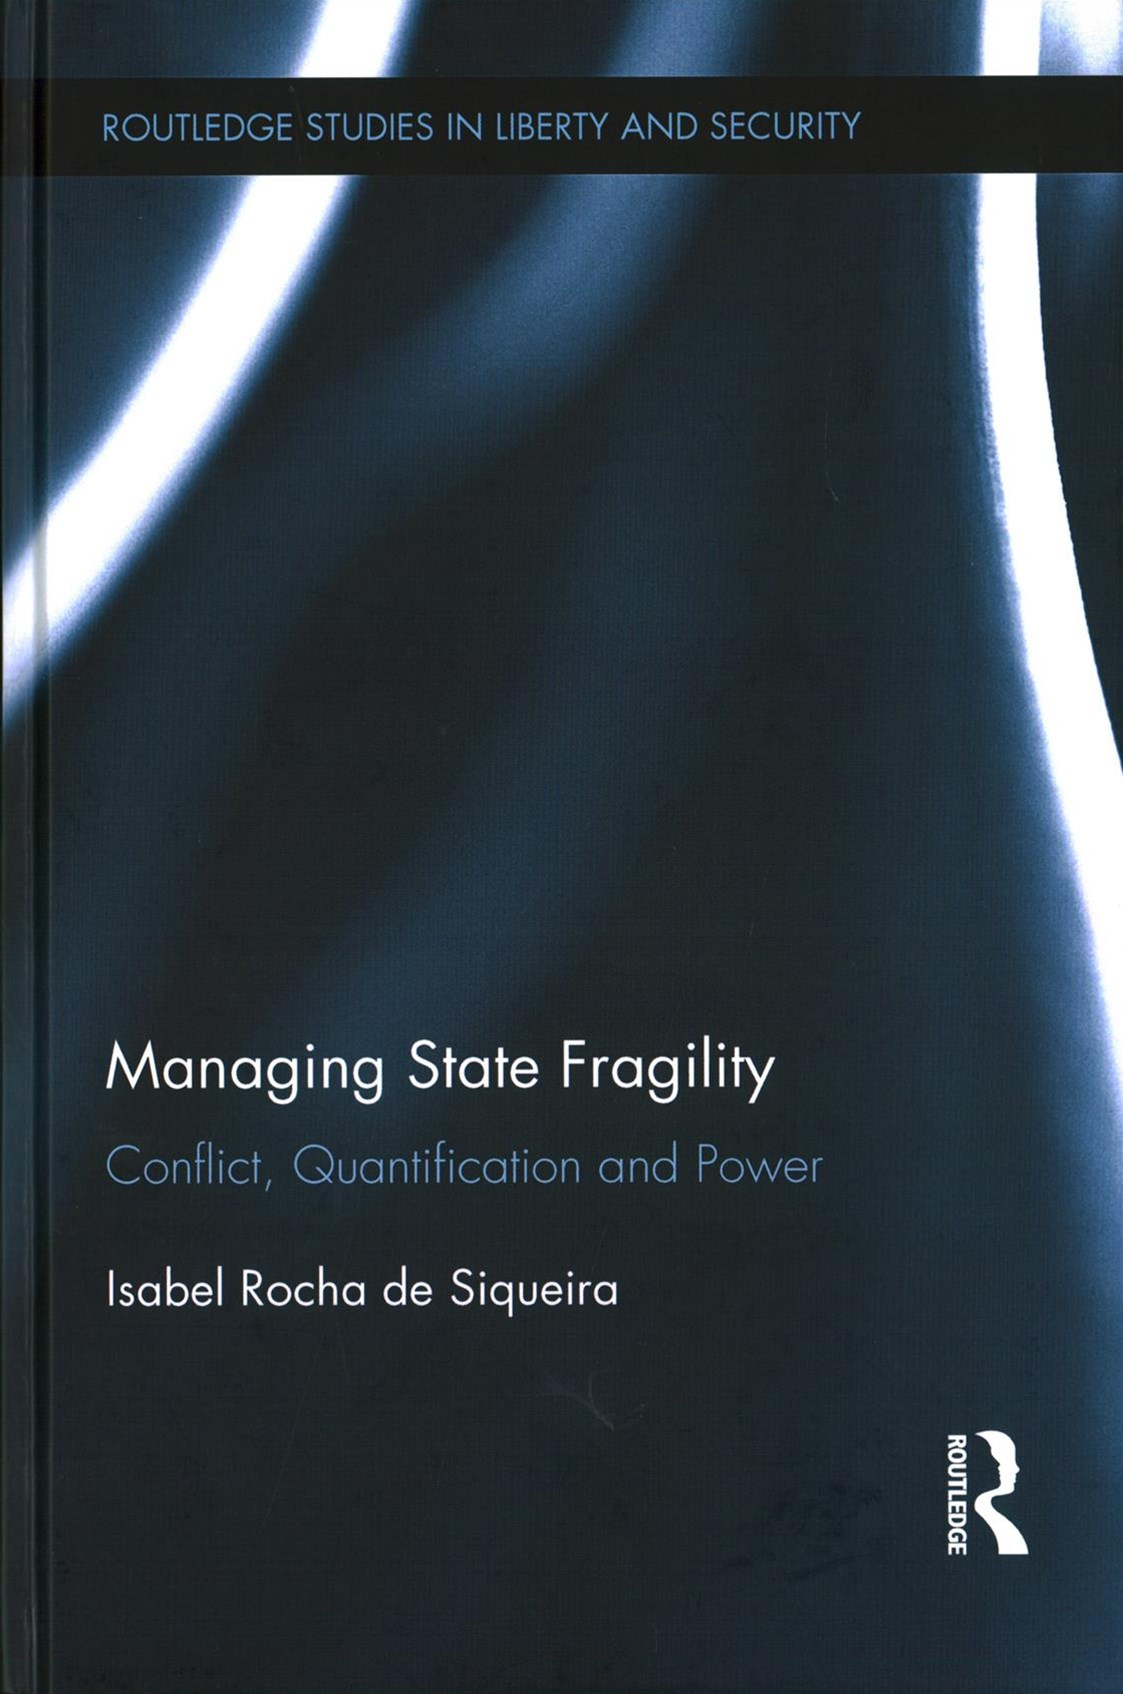 Managing State Fragility